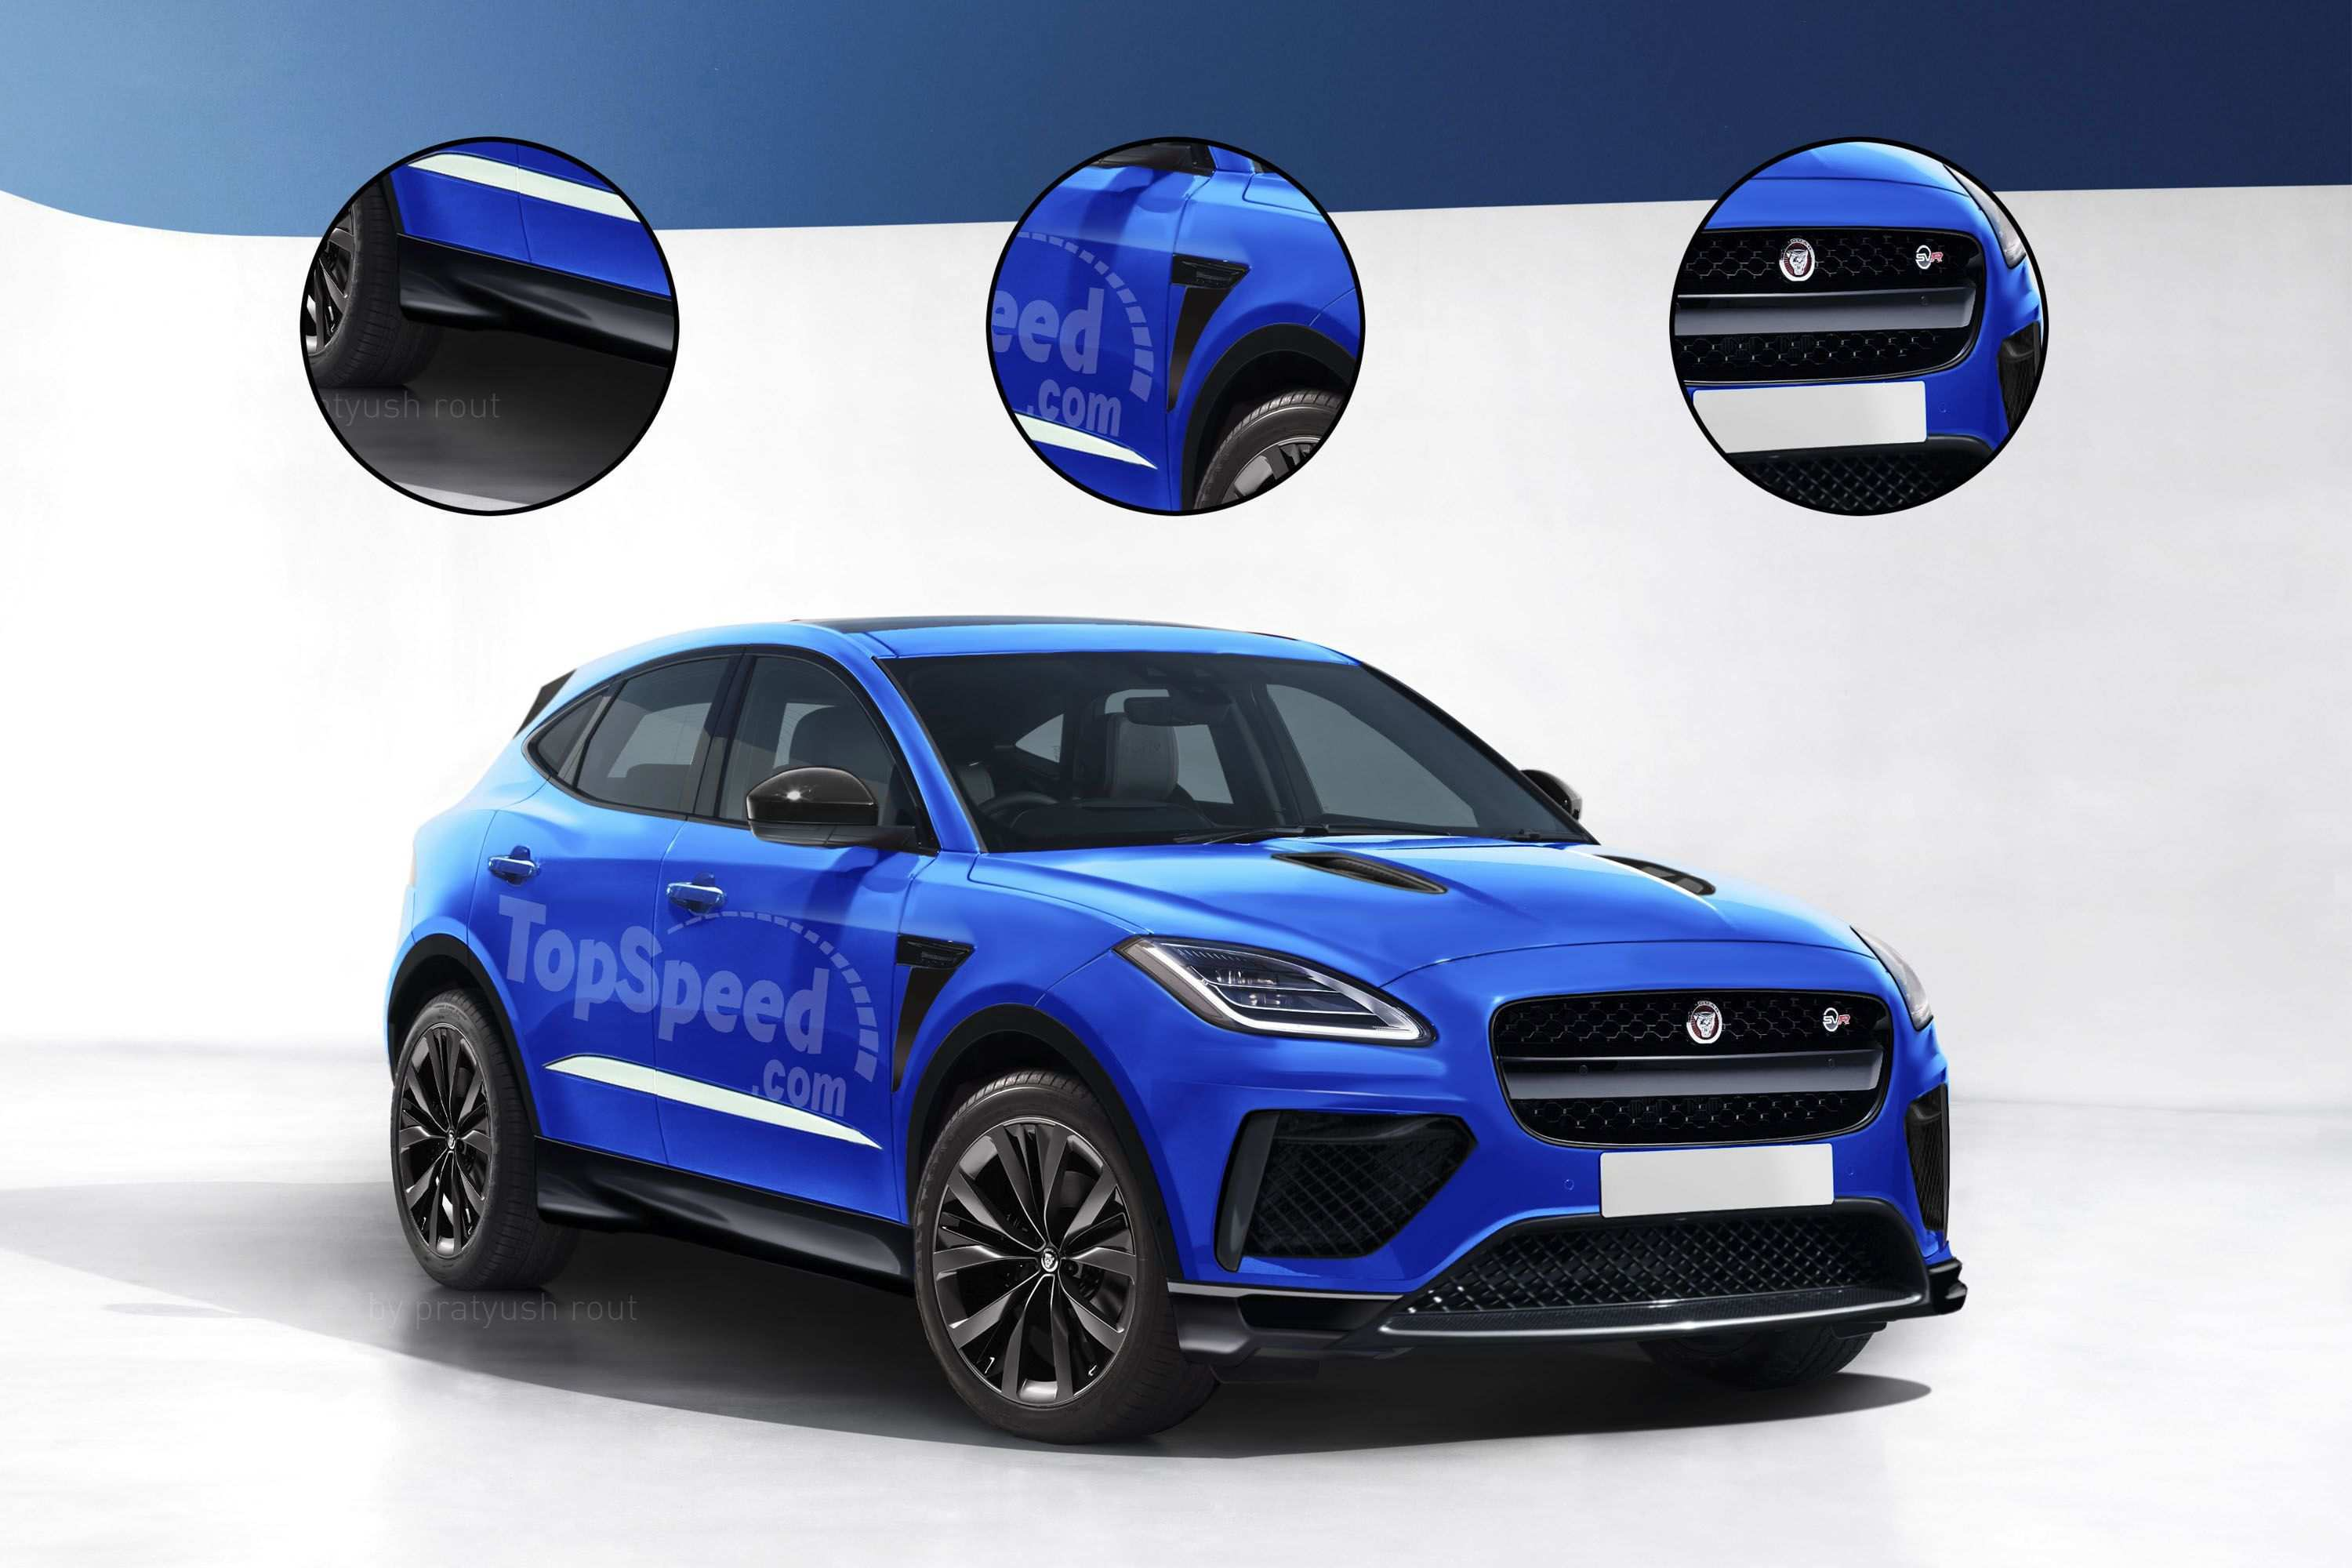 19 Gallery of Jaguar I Pace 2020 Exterior New Review for Jaguar I Pace 2020 Exterior